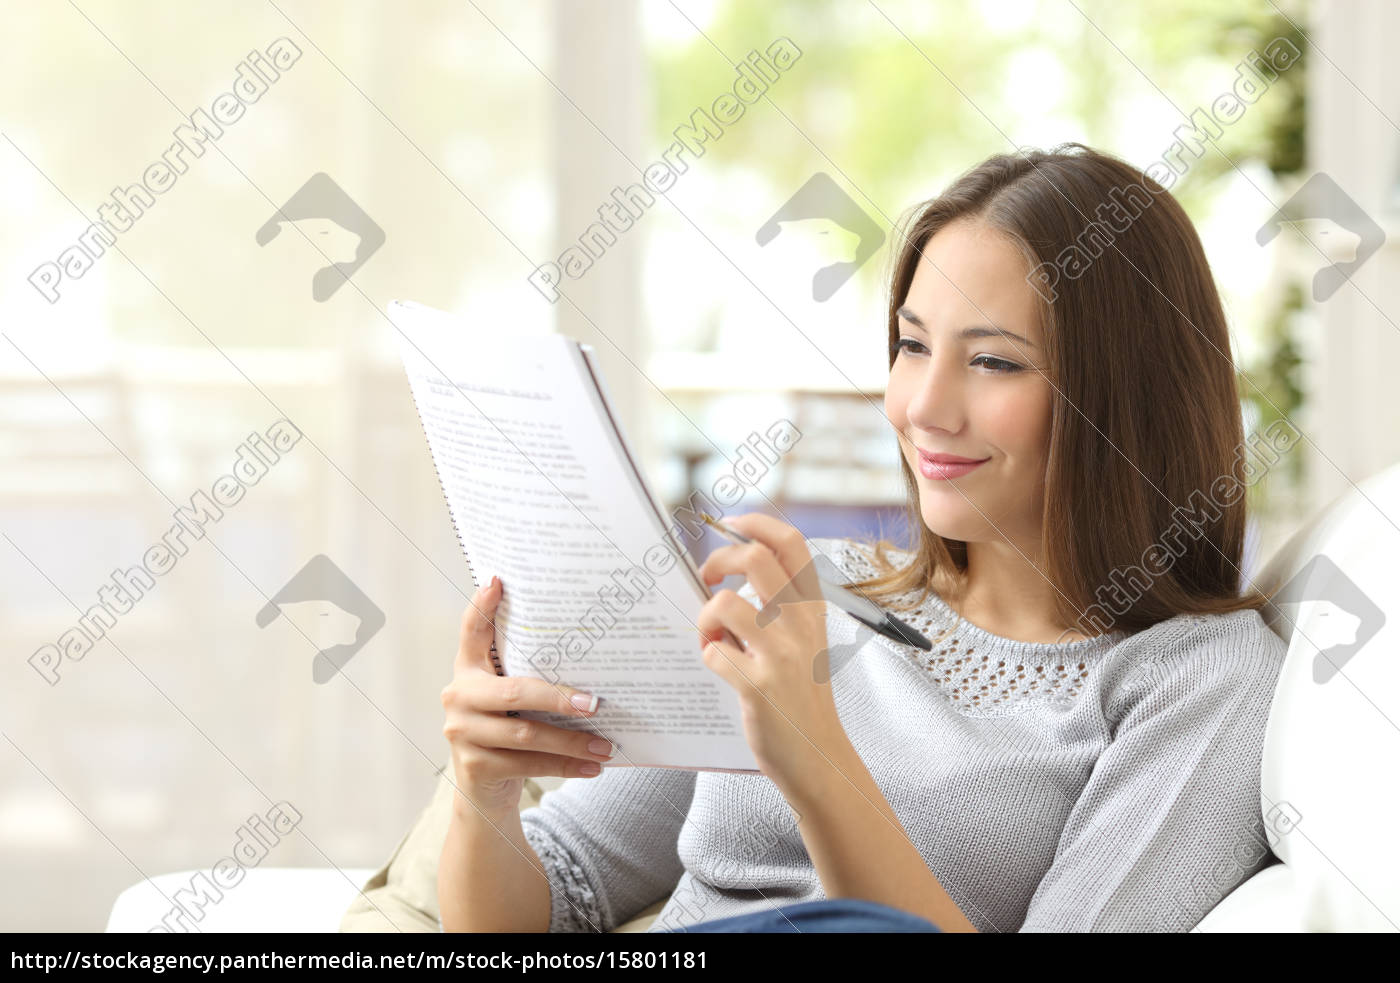 student, studying, and, learning, reading, notes - 15801181